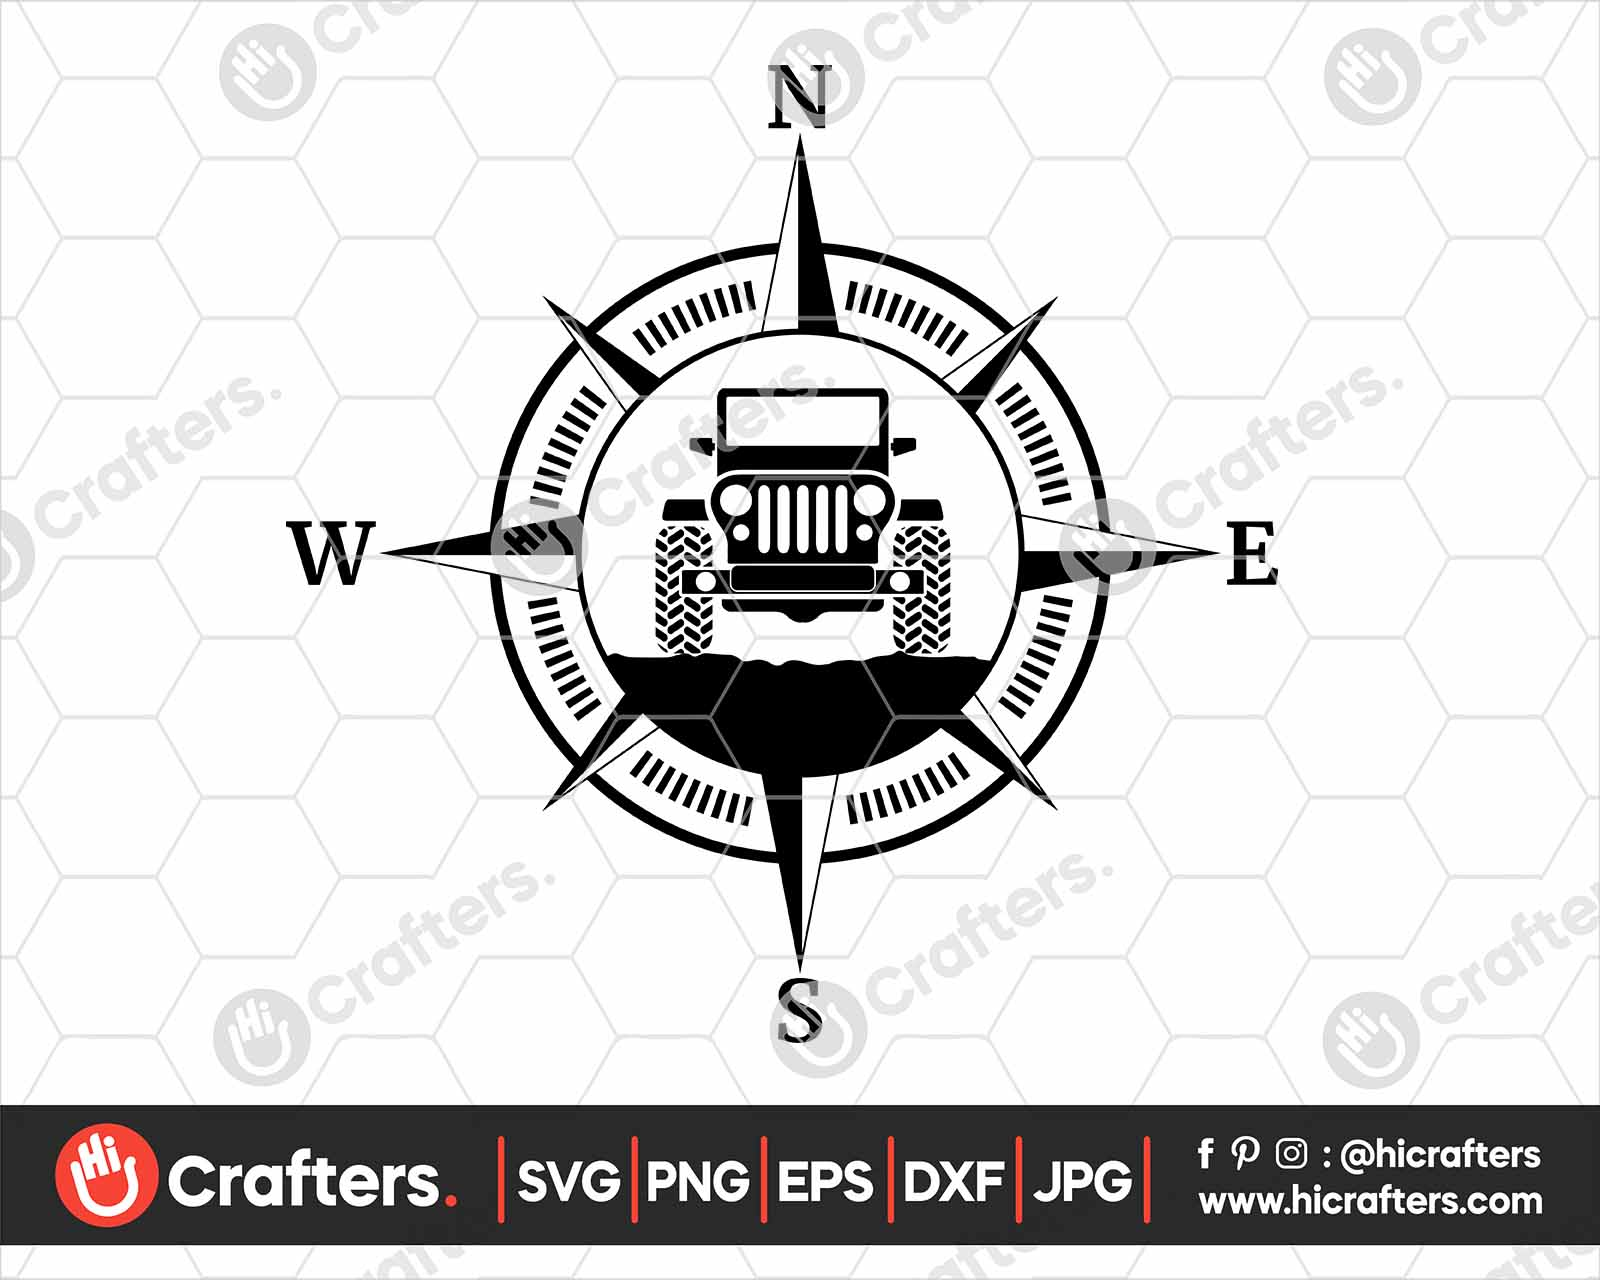 Download Jeep SVG - Jeep Girl SVG File For Cricut.. | Hi Crafters